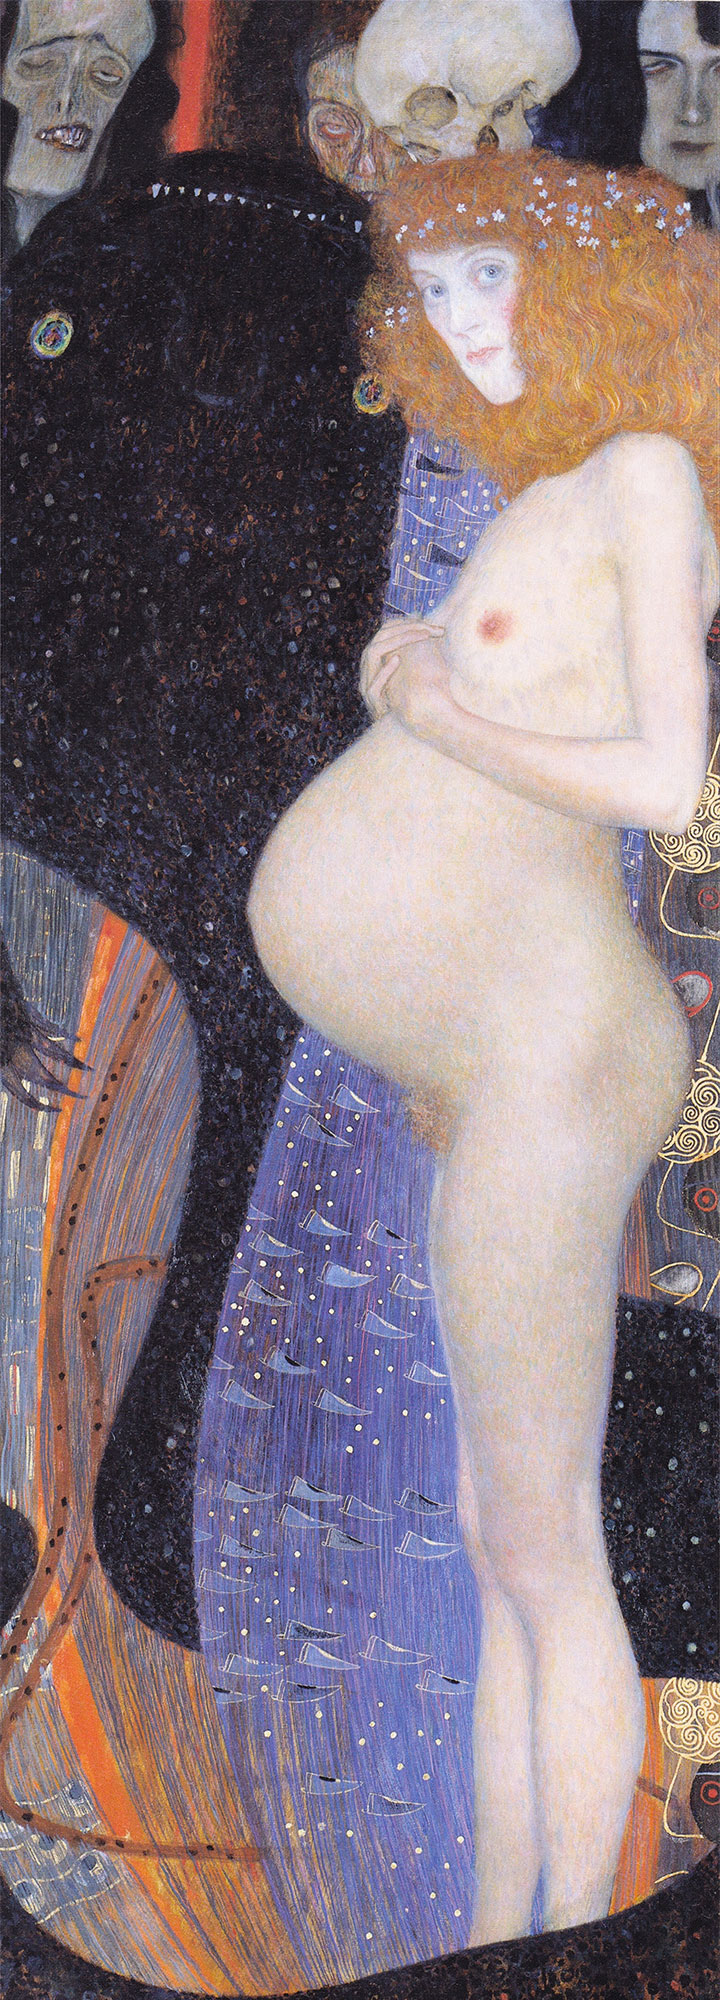 Speranza I - Hope 1 - Klimt - Quadro - Picture